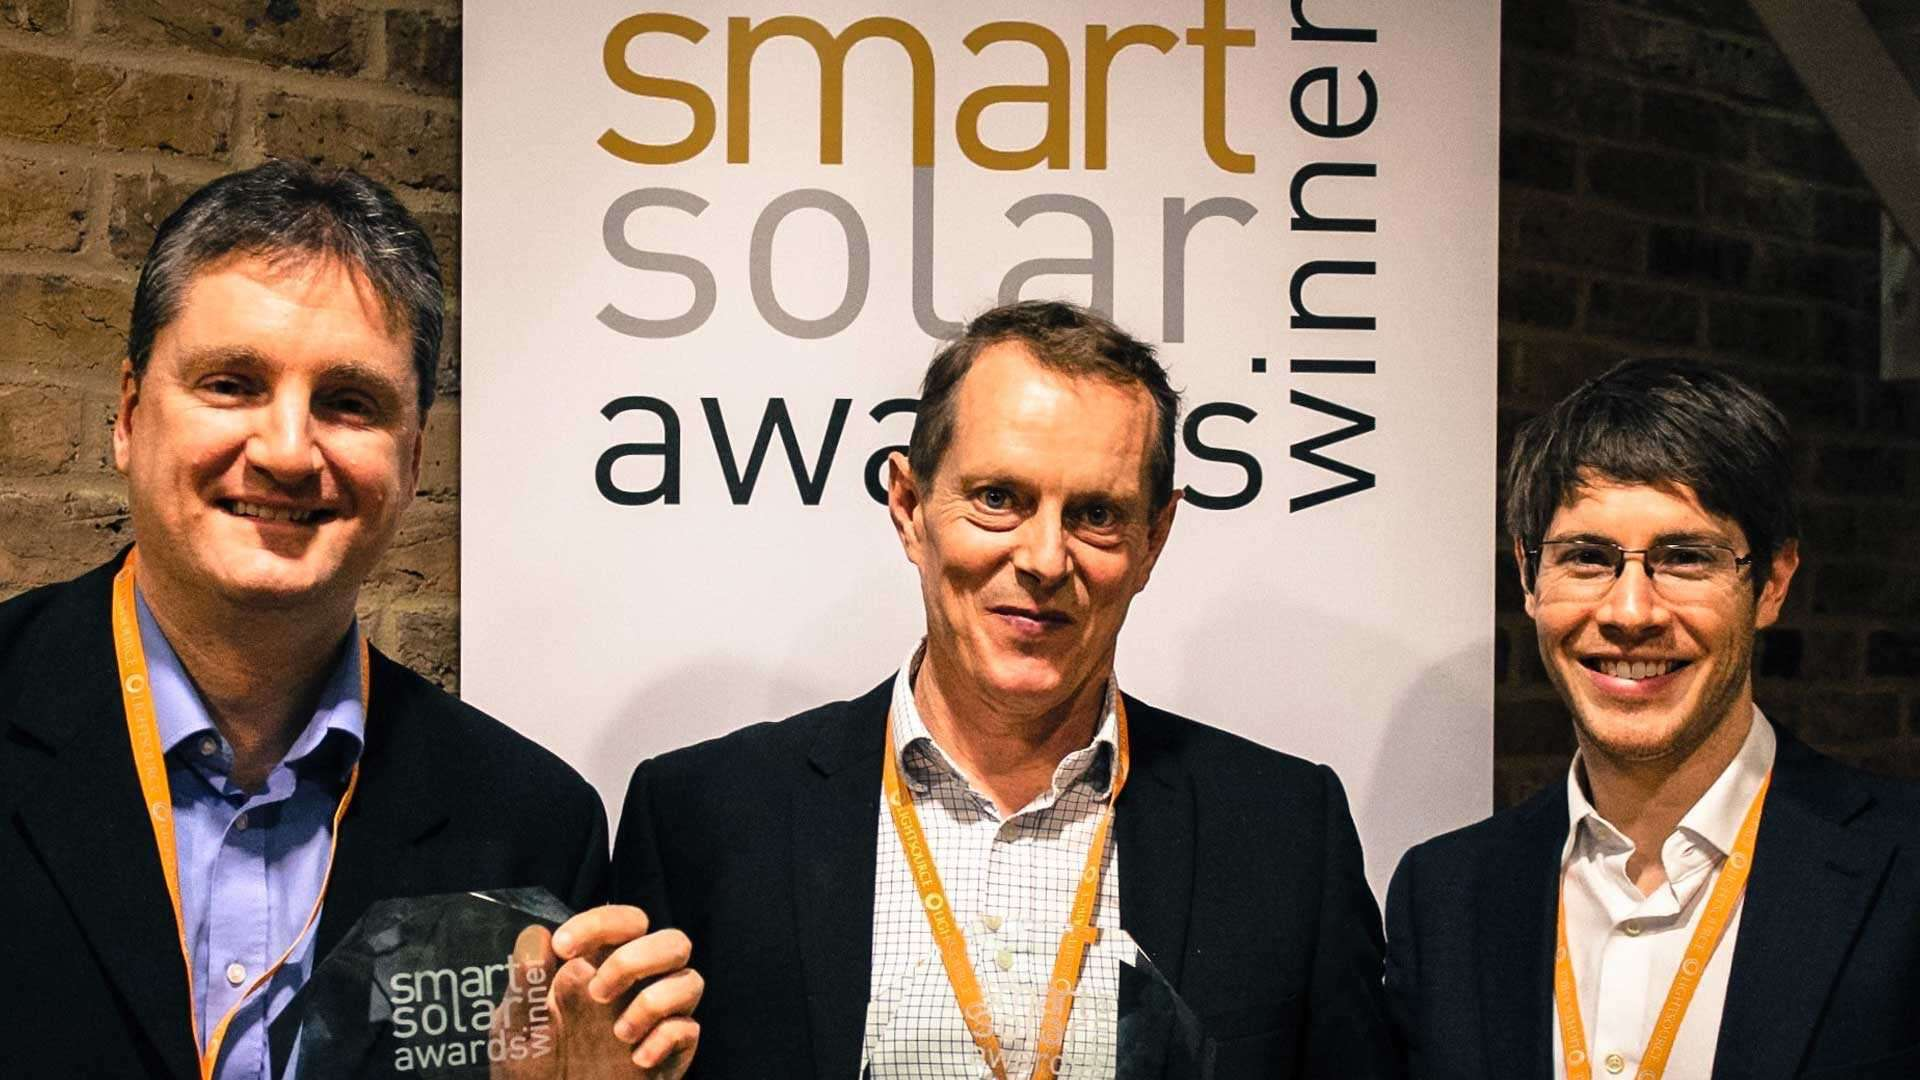 Dave Barwick collecting his award at the Smart Solar event